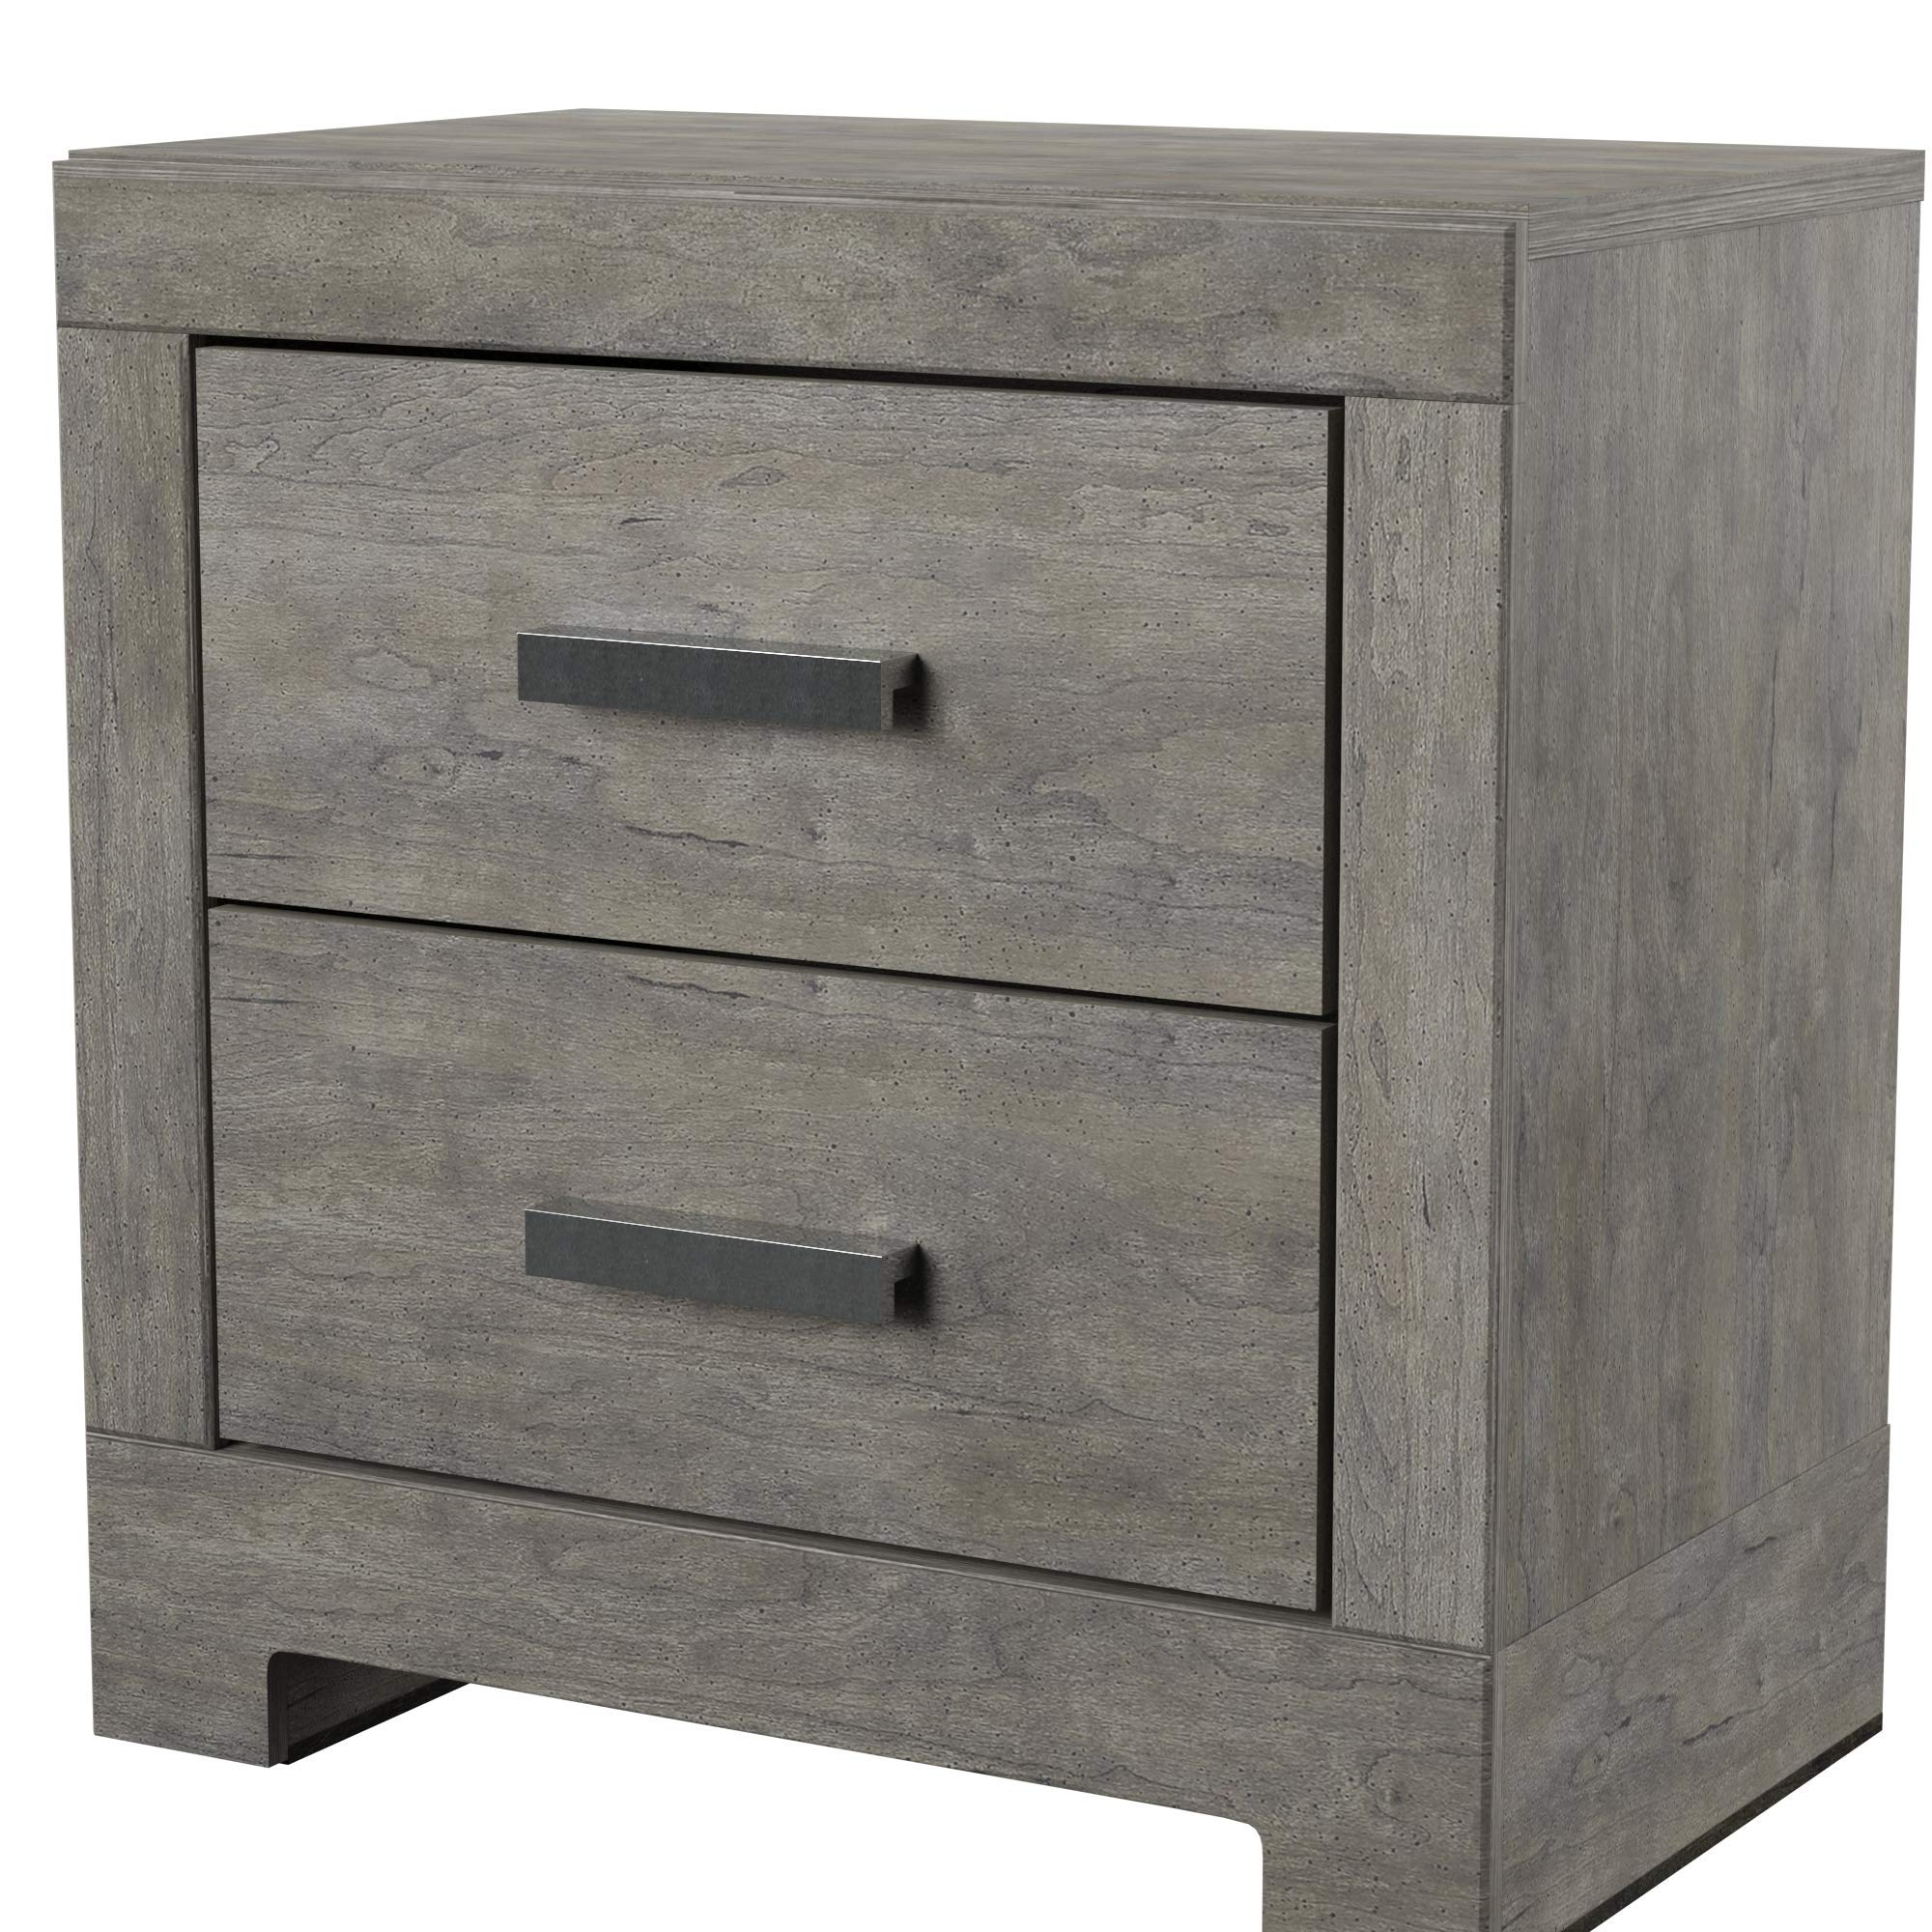 Ashley Furniture Signature Design - Culverbach Nightstand - Contemporary Style - Gray by Signature Design by Ashley